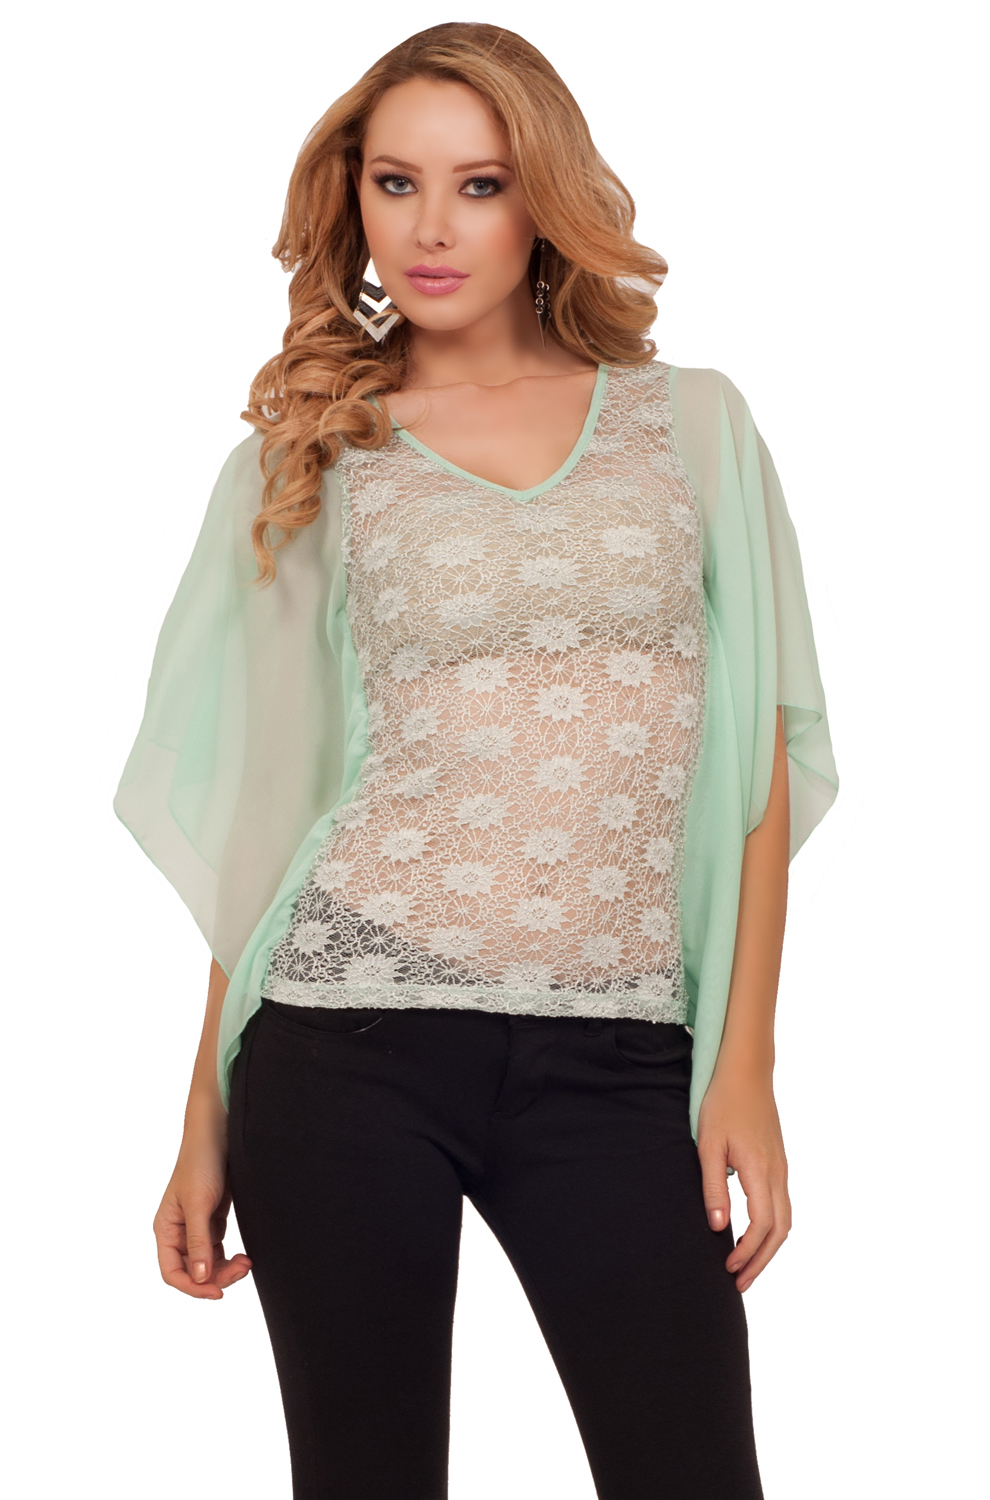 Shop for and buy evening tops online at Macy's. Find evening tops at Macy's.